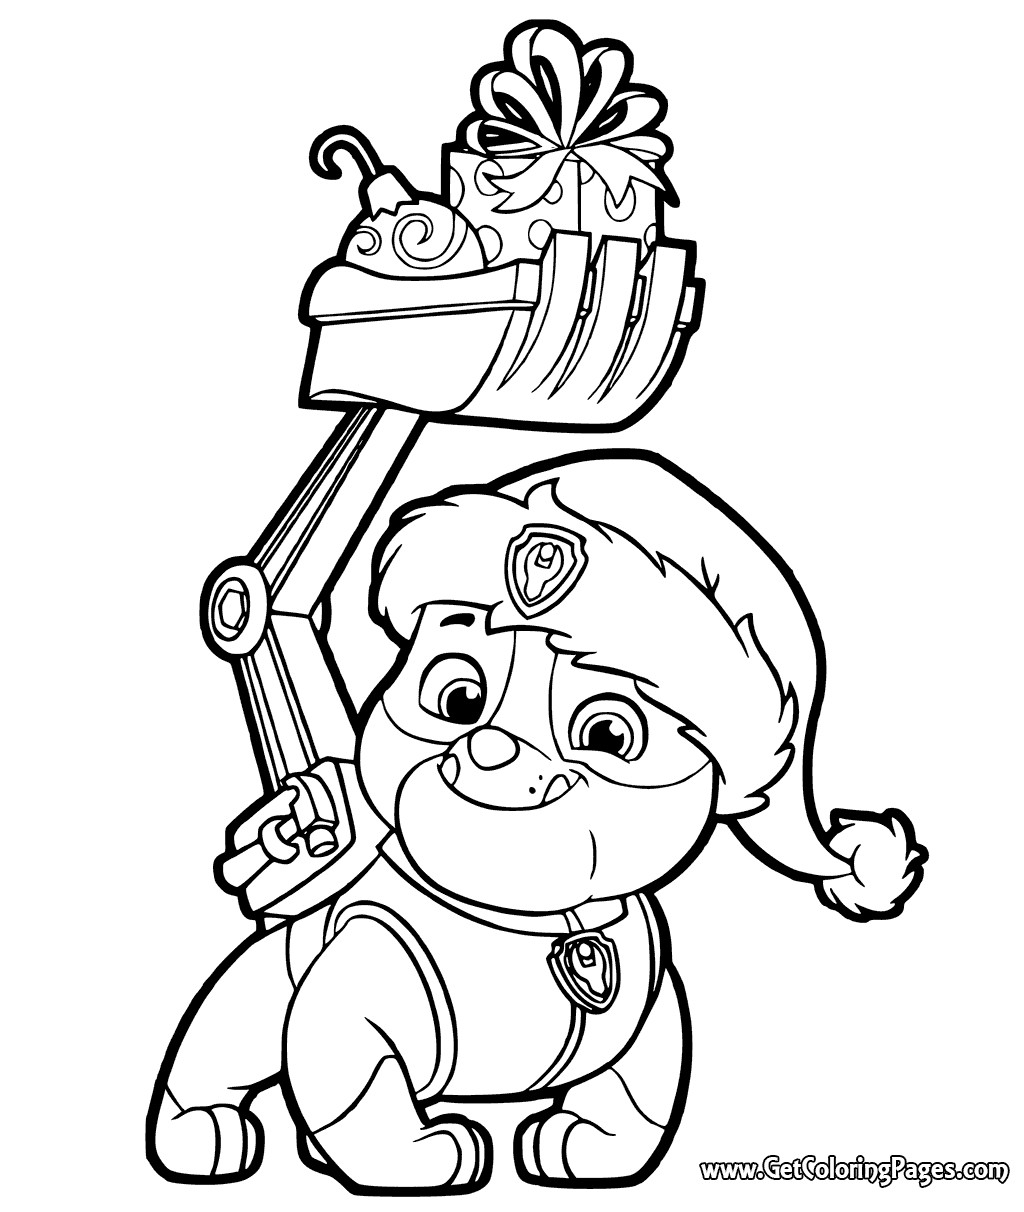 Nick Jr Christmas Coloring Pages At Getcolorings